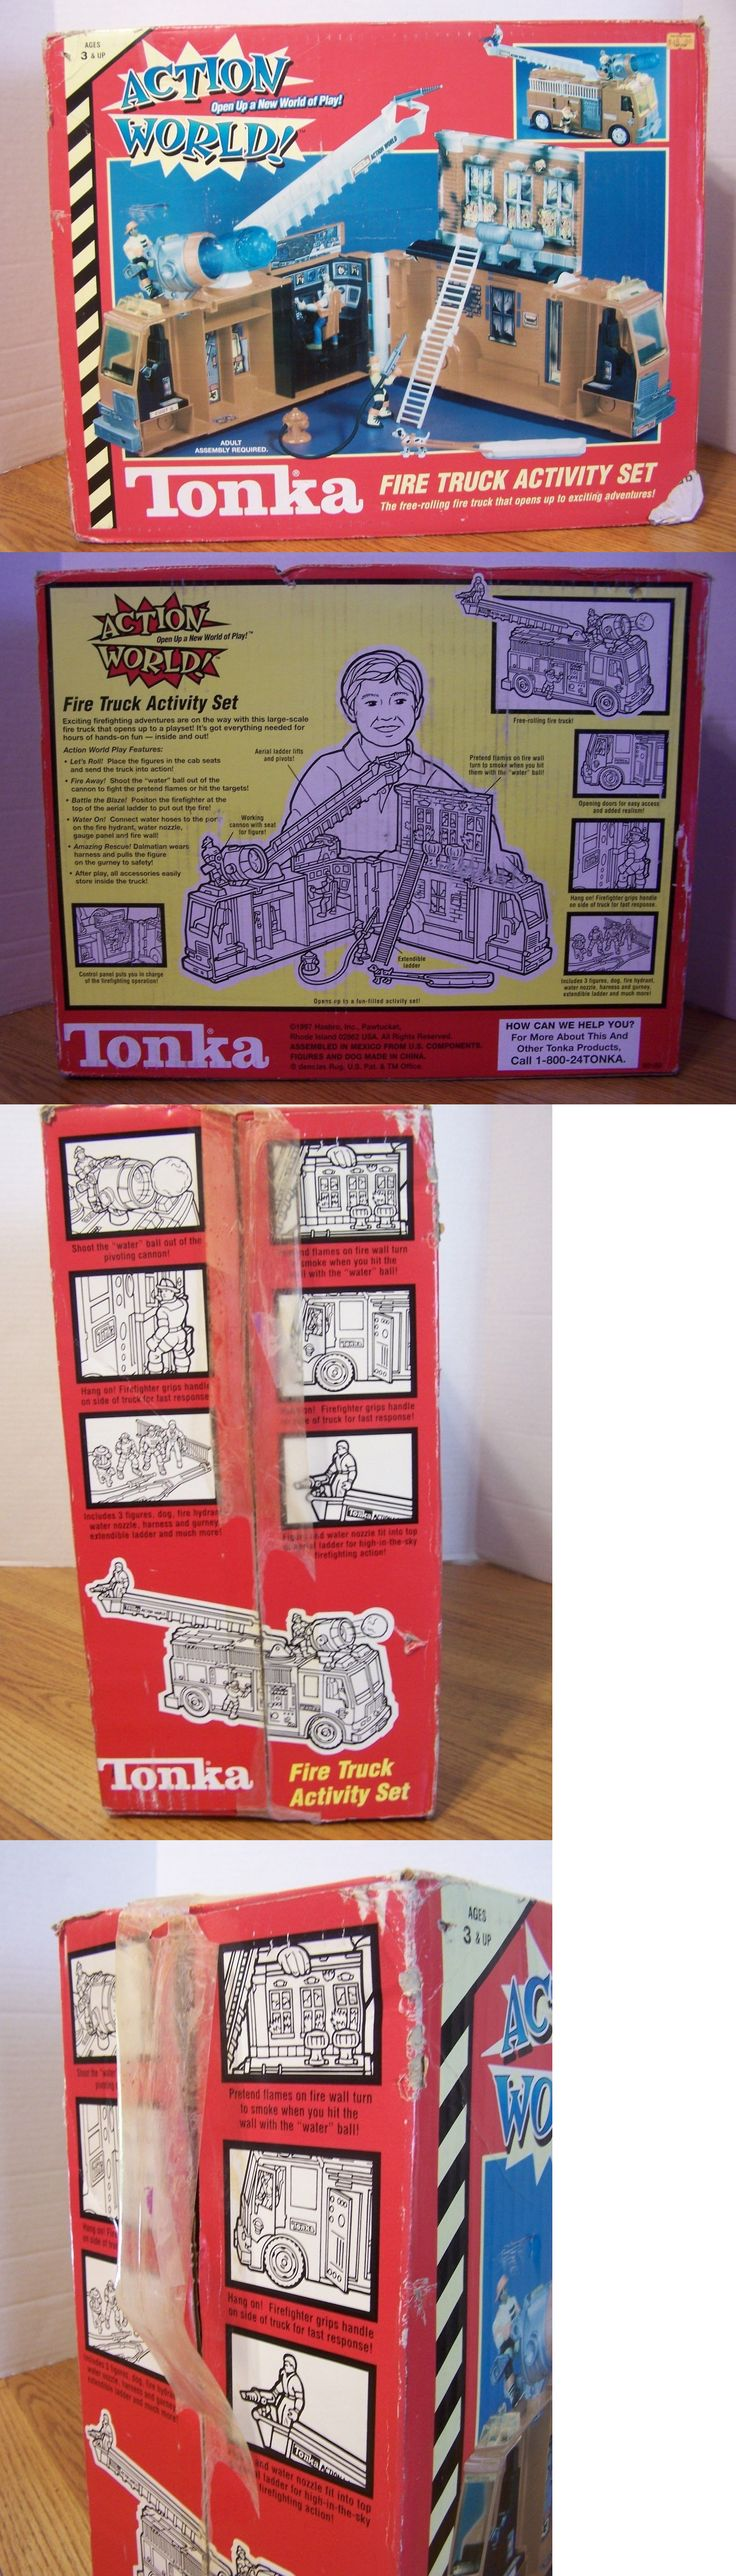 Toy Vehicles 145946: Hasbro Tonka Action World Fire Truck Activity Set Nos Vintage Rare 1997 -> BUY IT NOW ONLY: $129.99 on eBay!